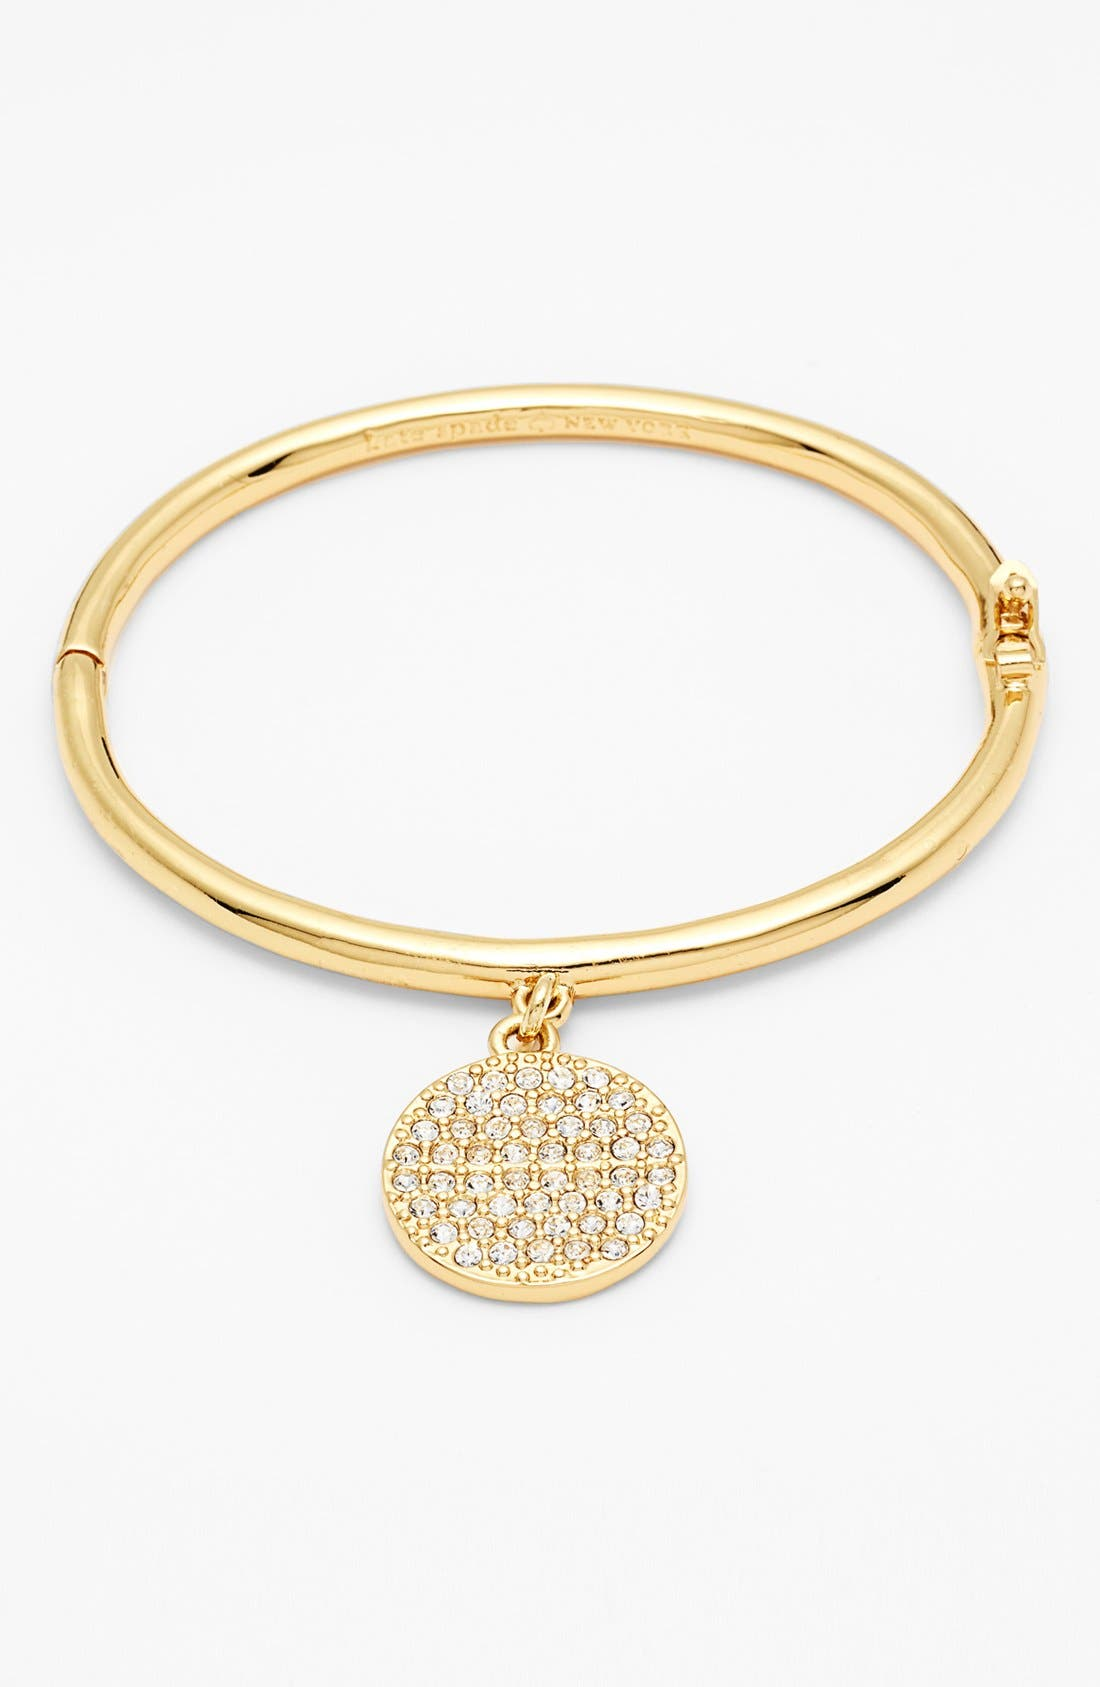 Alternate Image 1 Selected - kate spade new york 'idiom - all that glitters' boxed pavé charm bangle